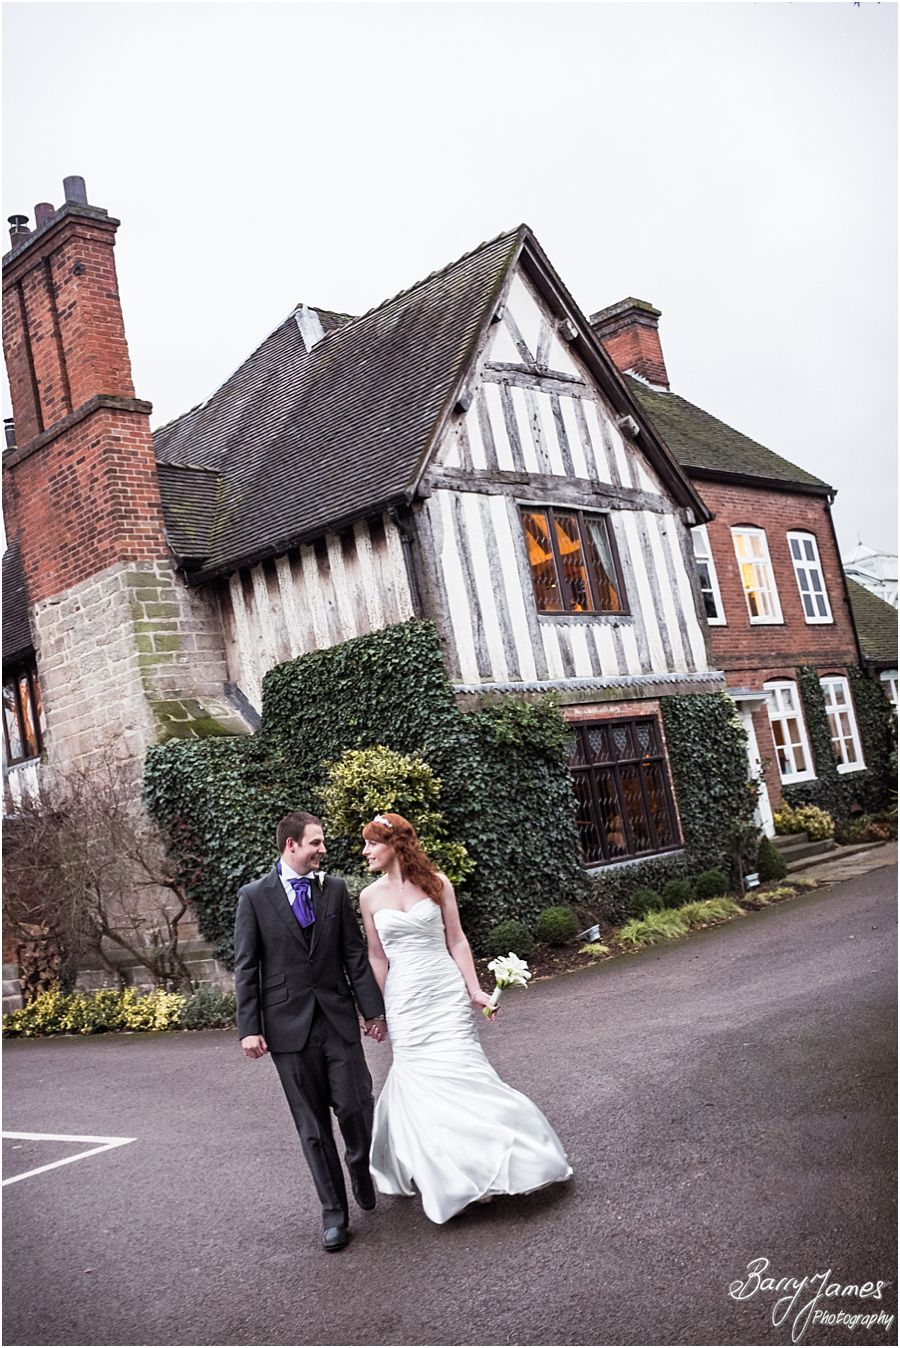 Creative candid photographs of a Moat House wedding in Acton Trussell by Venue Preferred Wedding Photographer Barry James